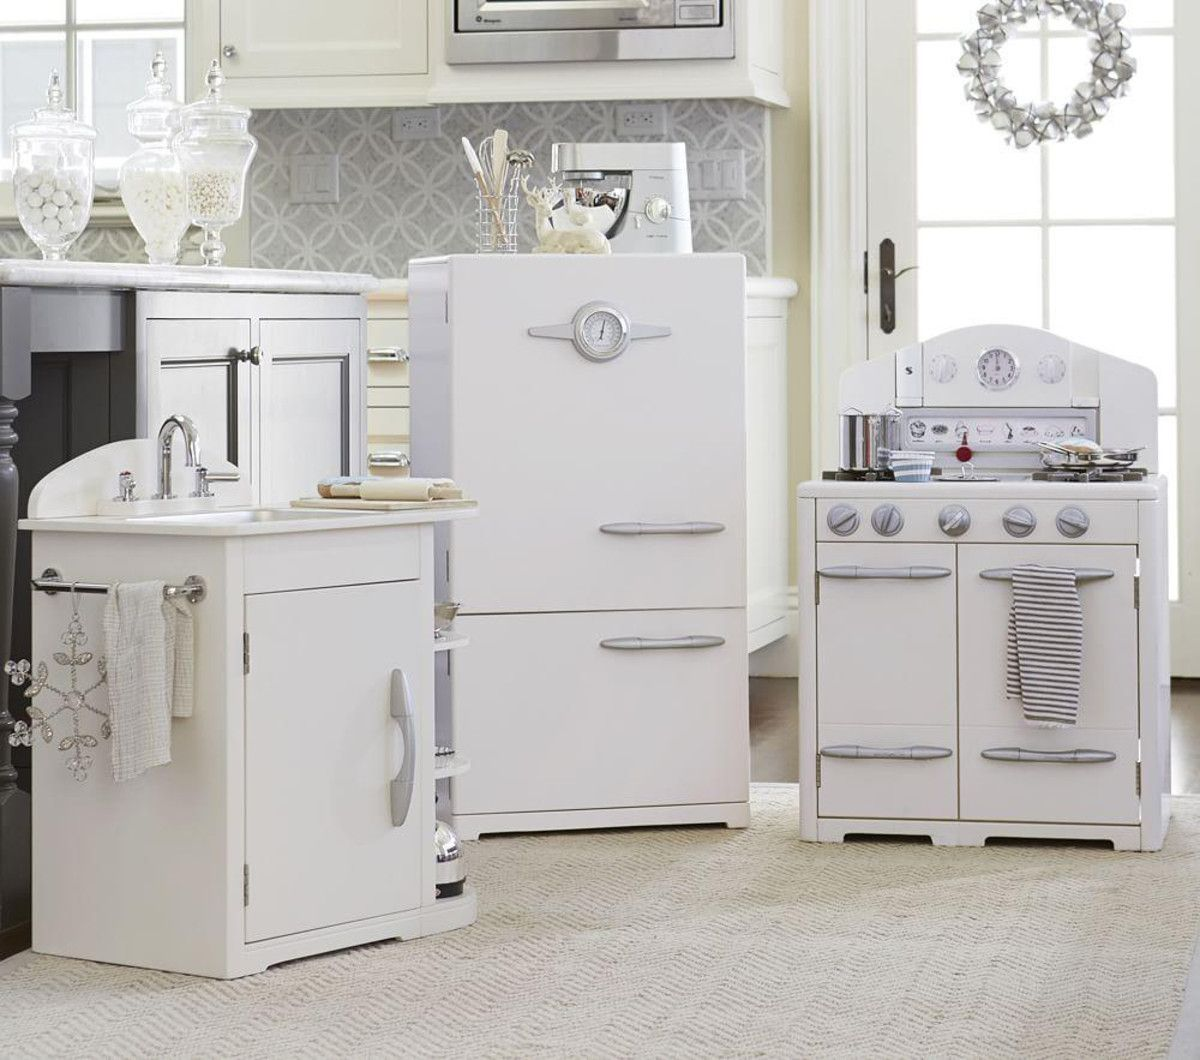 How to Choose the Perfect Kids Kitchen Playsets | kitchen cabinets ...